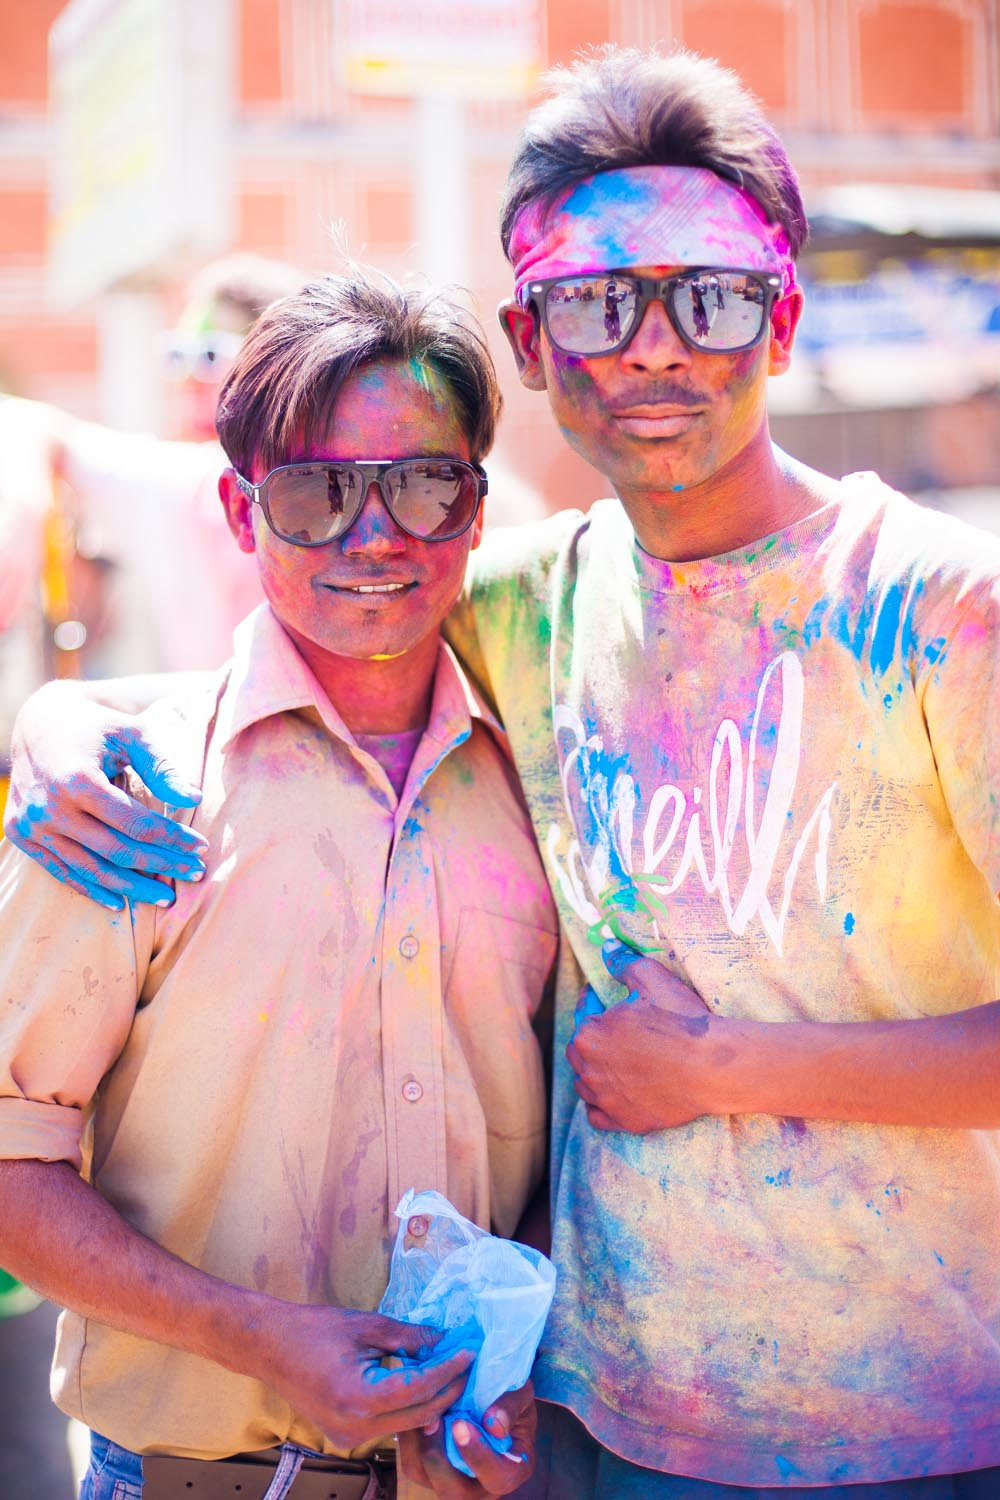 Holi is very significant for many people in India, and it has very ancient and culturally rich roots: Jaipur, Rajasthan